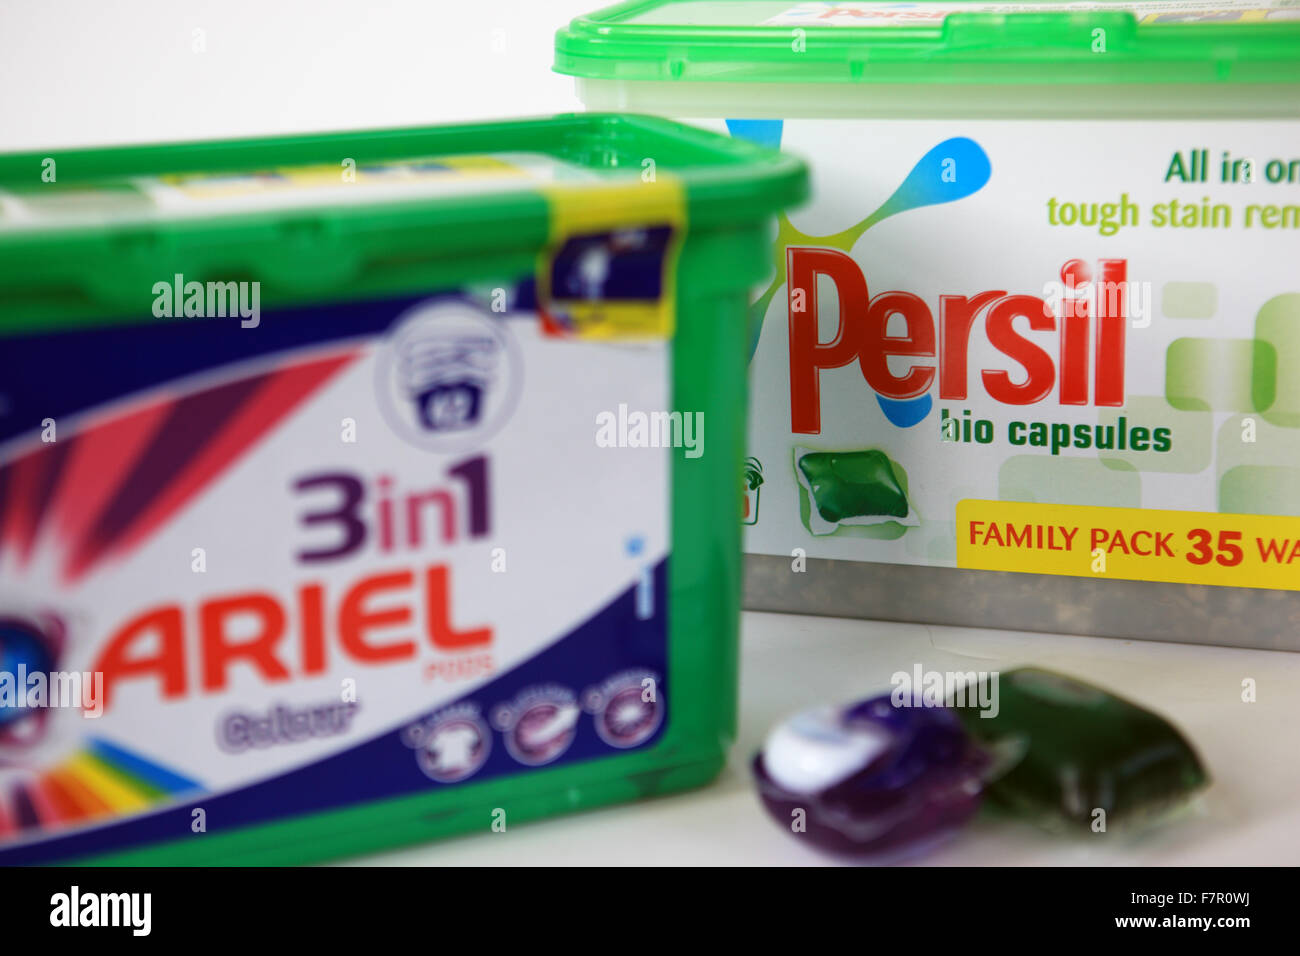 Persil and Ariel clothes washing capsules - Stock Image